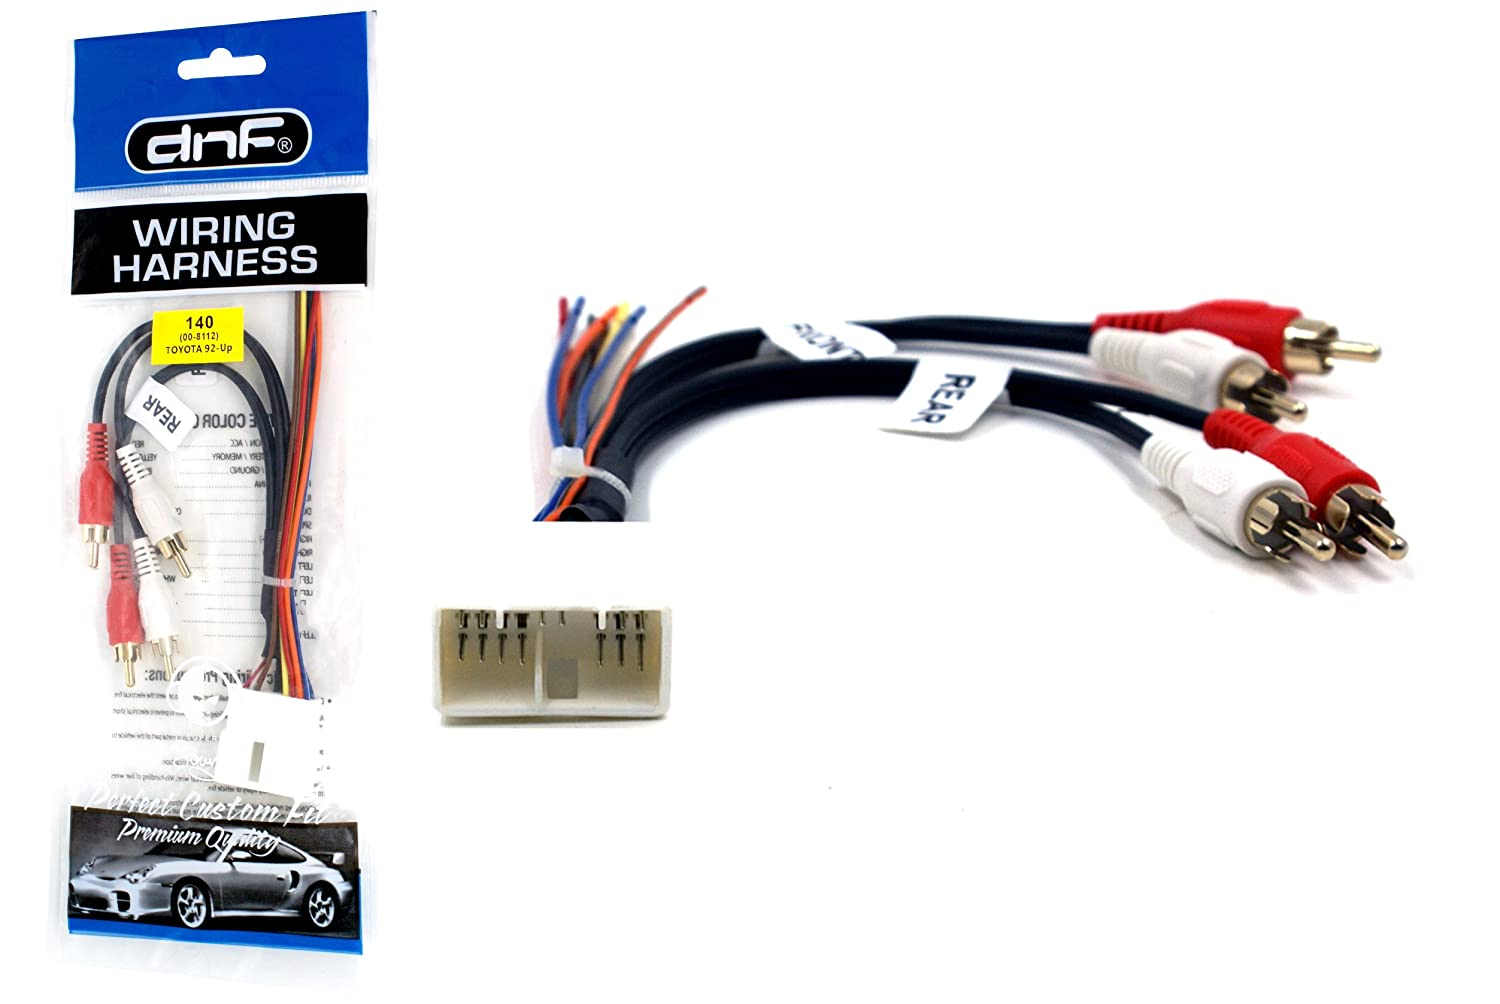 Dnf Premium Sound System Amp Integration Wiring Harness Toyota Supera For Aftermarket Stereos 70 8112 100 Copper Wires Automotive